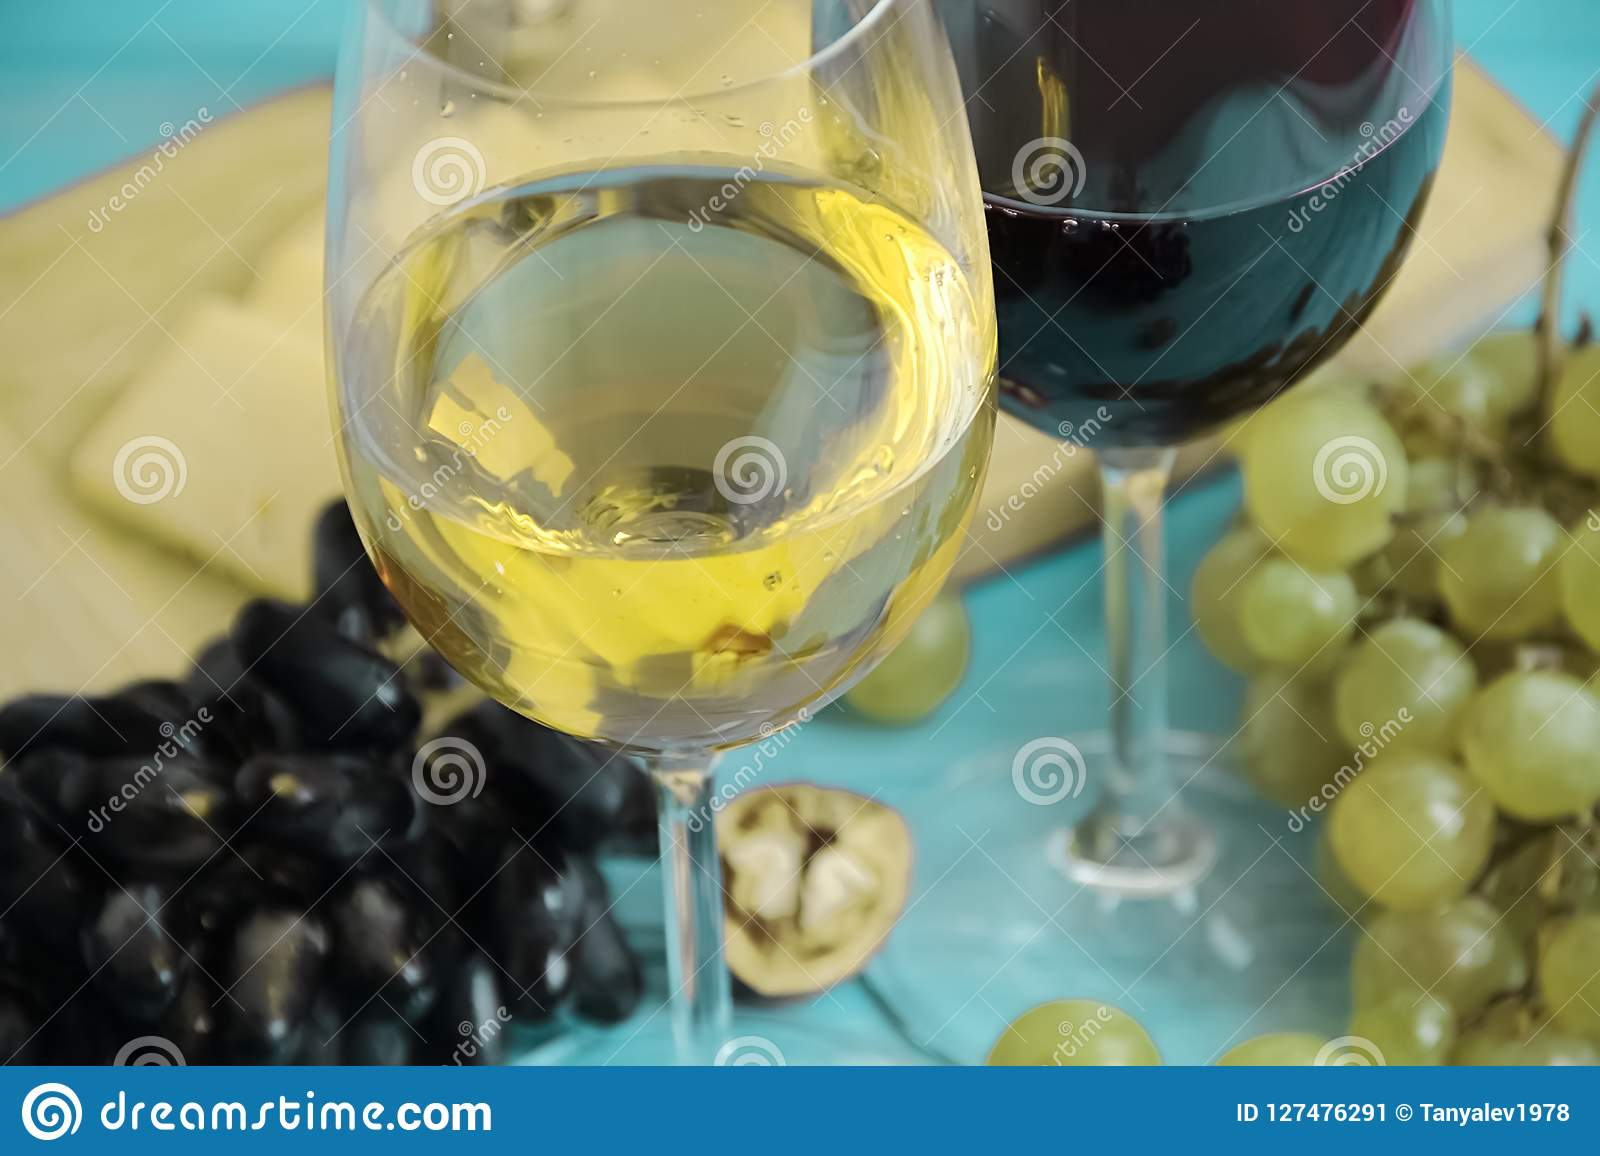 Grapes, a glass of wine nut autumn rustic beverage cheese on a blue wooden backgrounnut